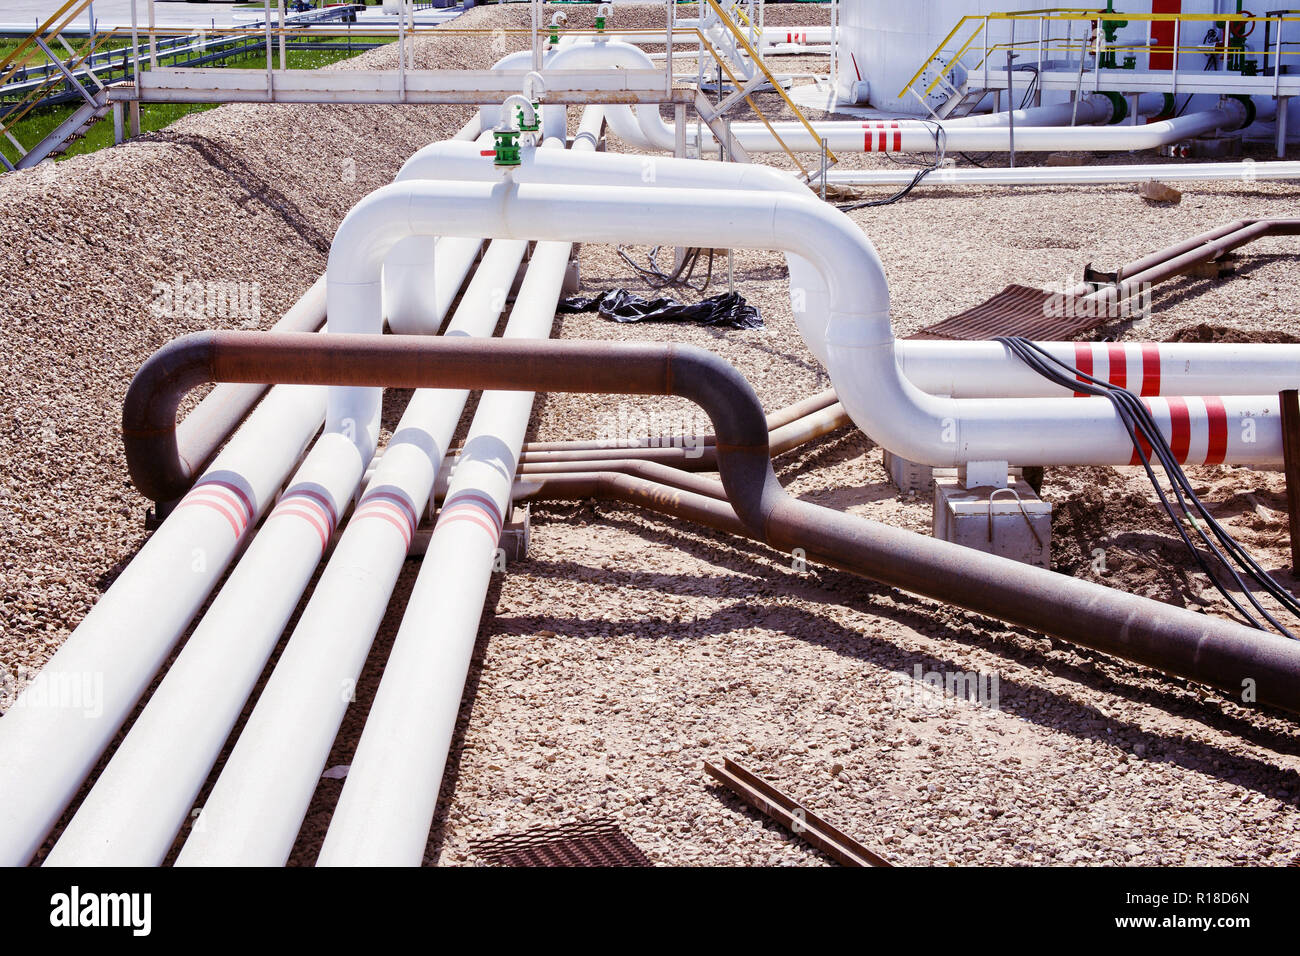 Steel fuel pipes and valves at the oil refinery - Stock Image